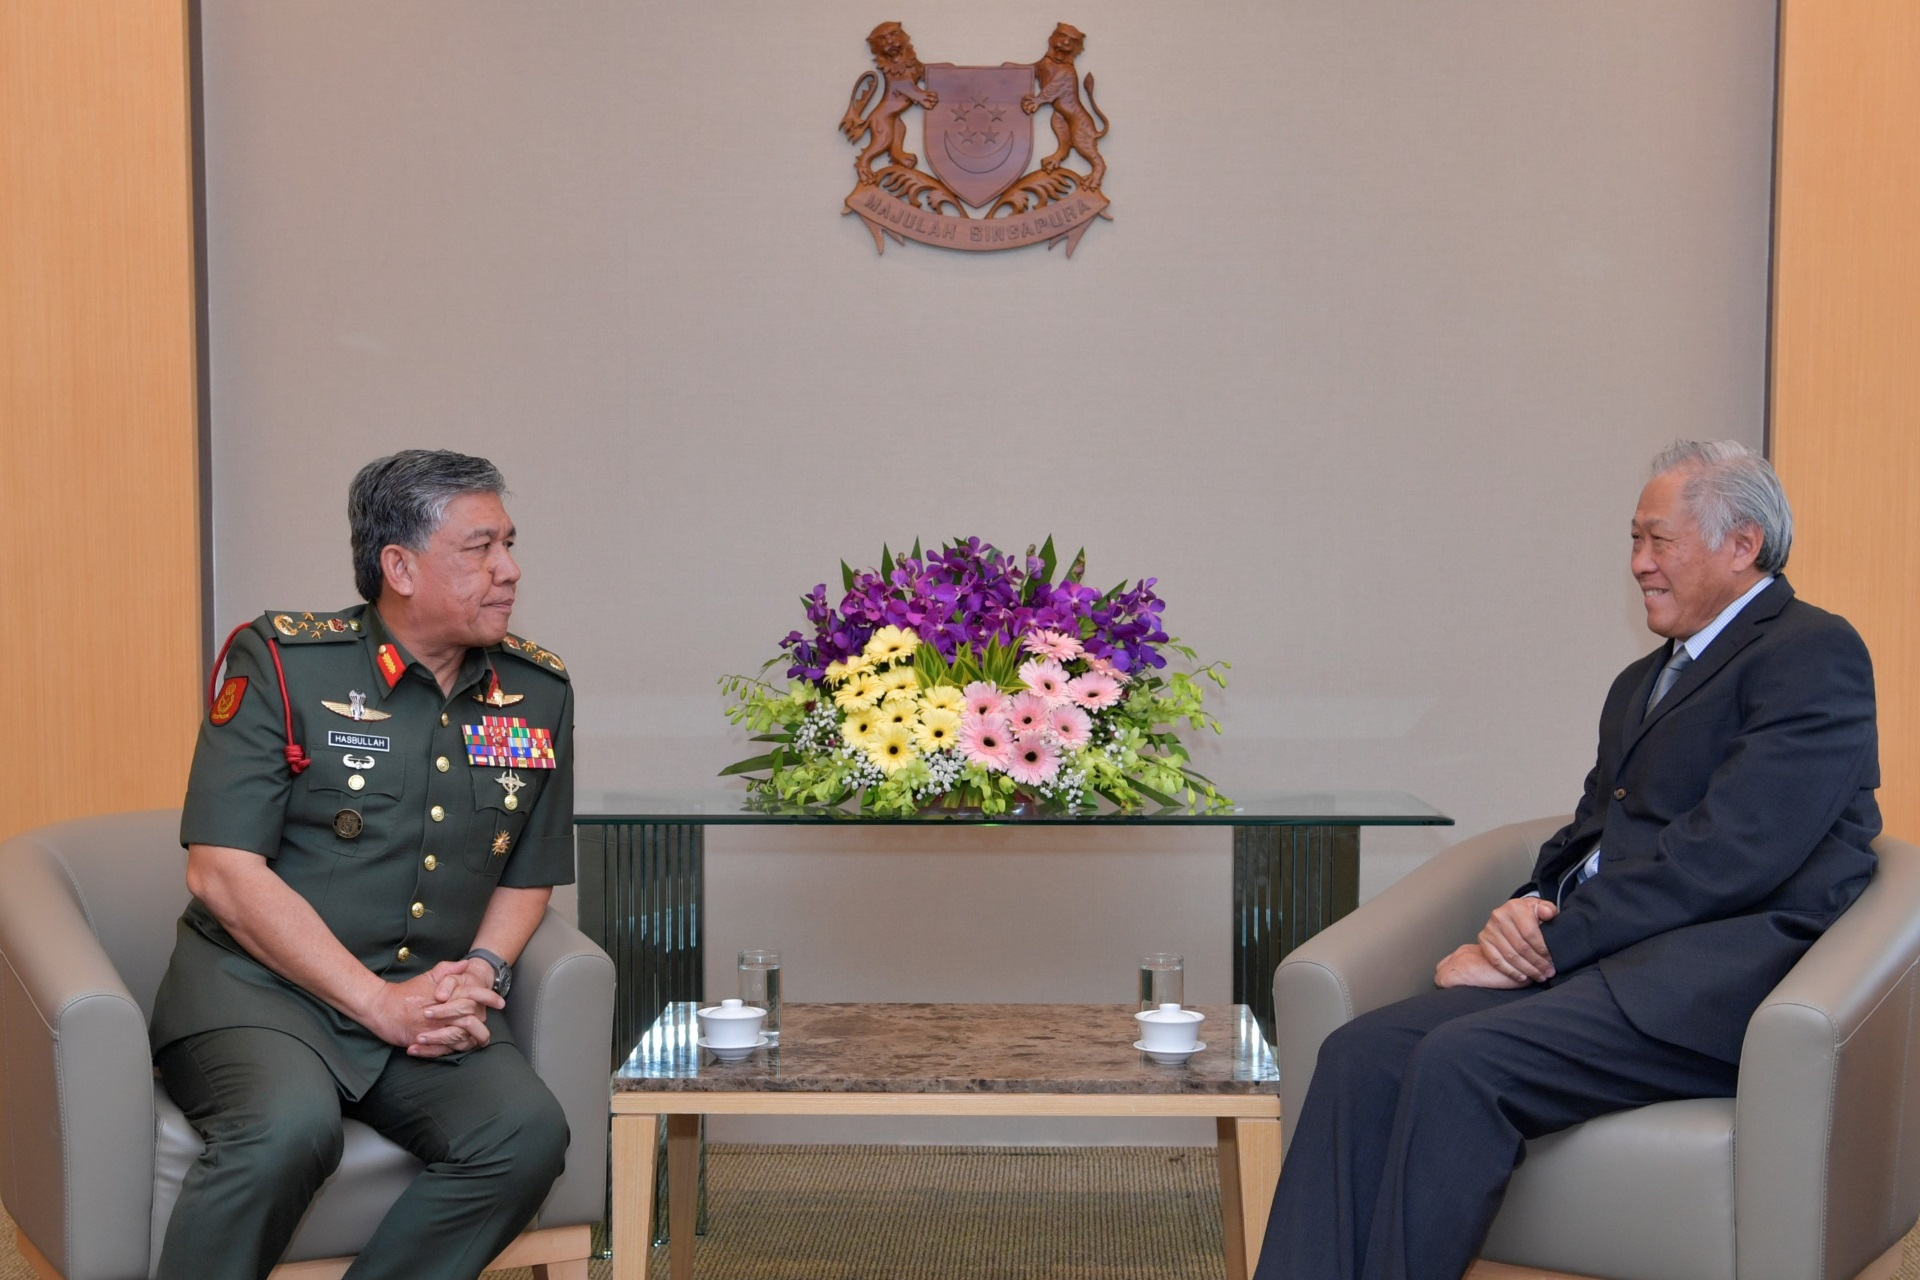 Malaysian Armed Forces Chief of Army, General (GEN) Dato' Seri Panglima Hj Ahmad Hasbullah bin Hj Mohd Nawawi (left) calling on Minister for Defence Dr Ng Eng Hen (right).